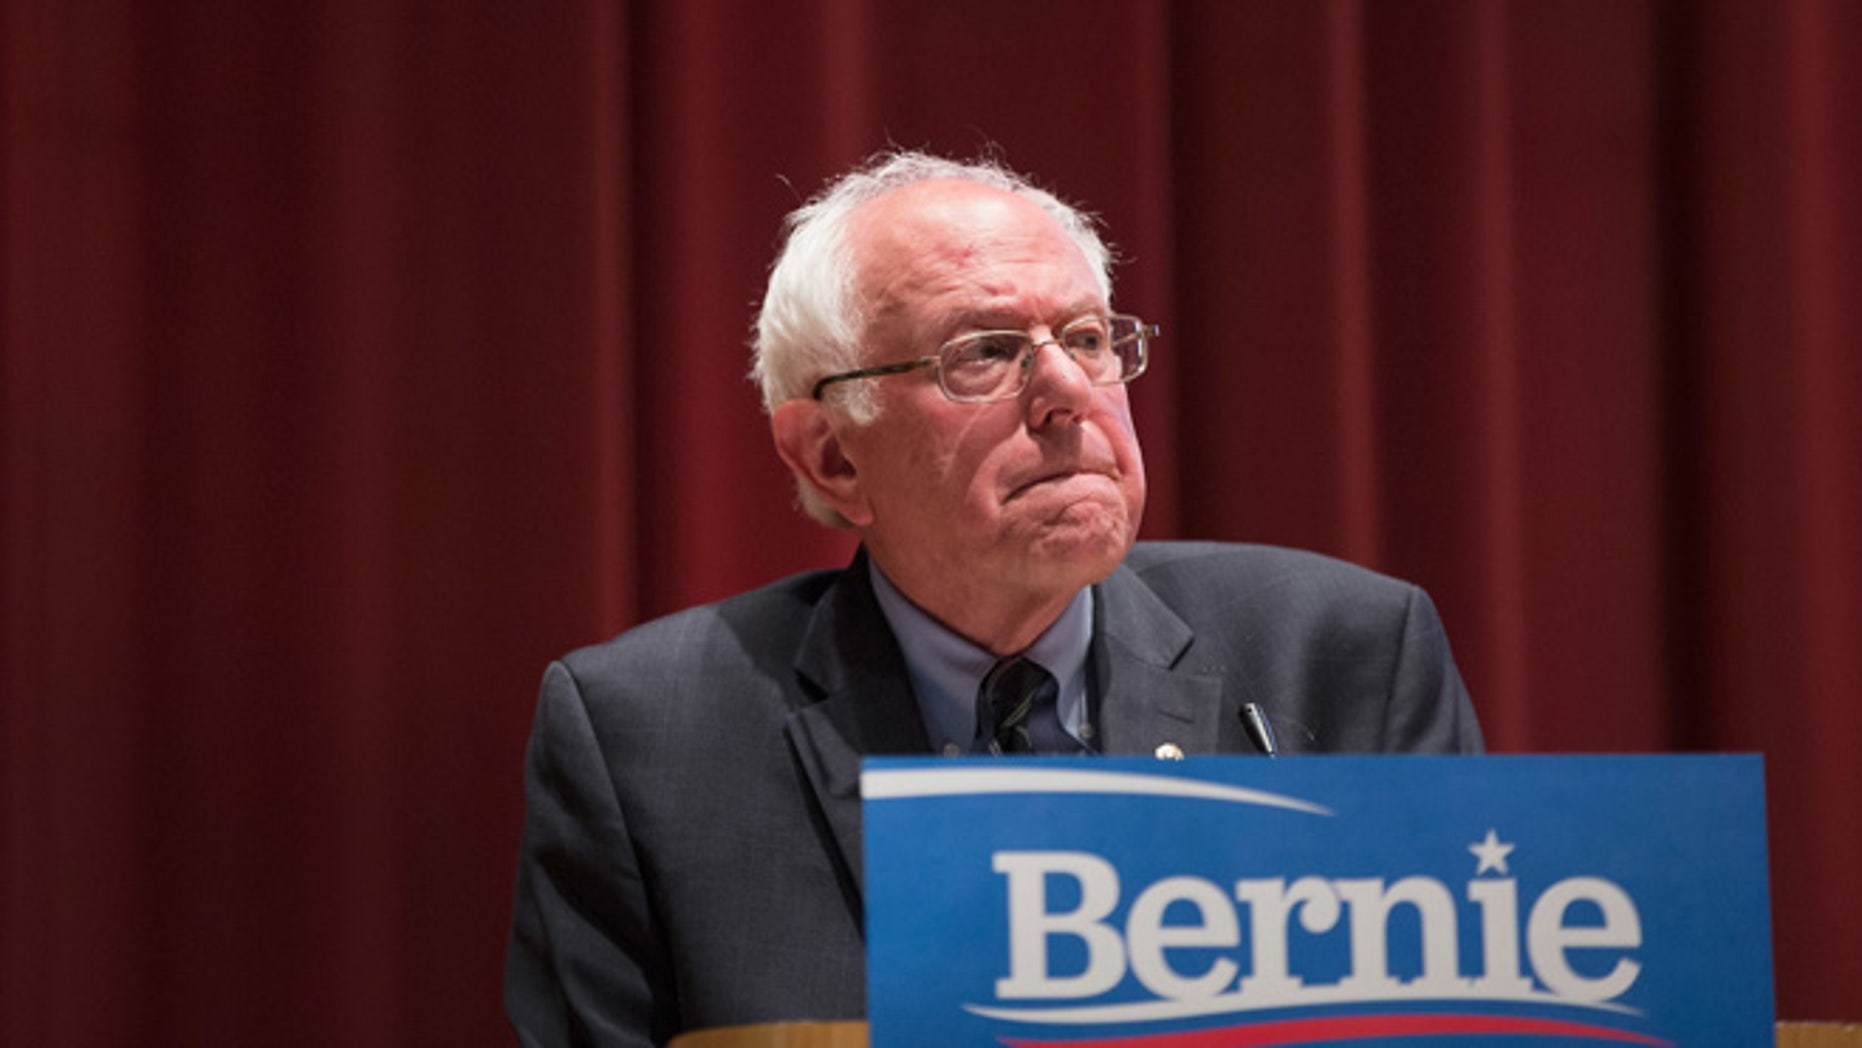 Sen. Bernie Sanders  at Drake University on June 12, 2015 in Des Moines, Iowa.